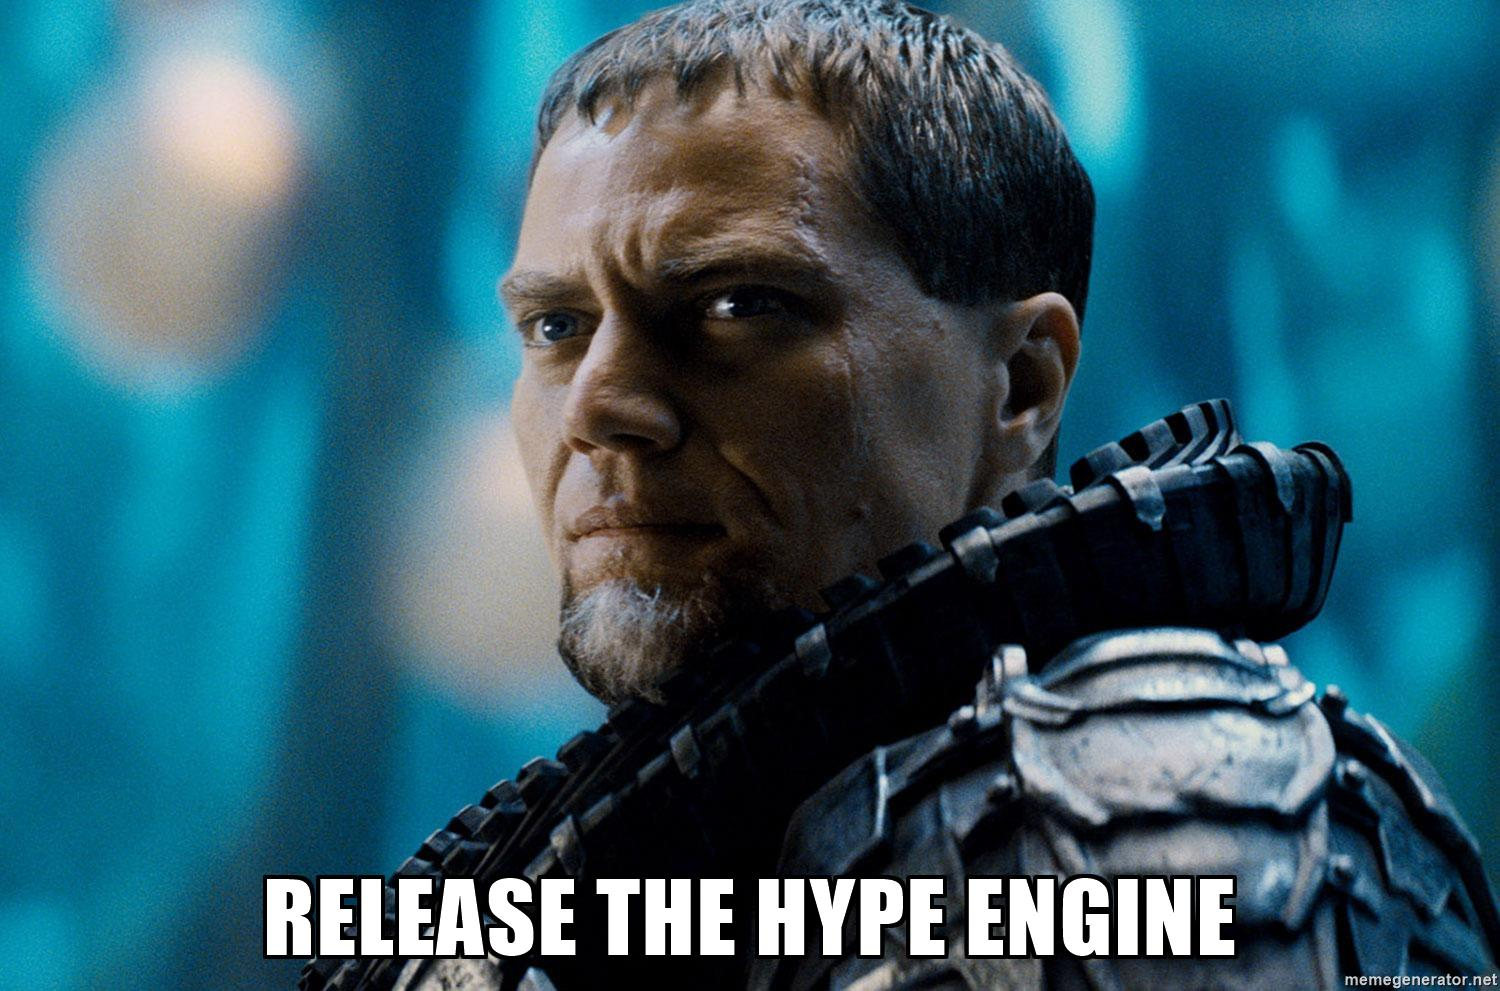 release the hype engine